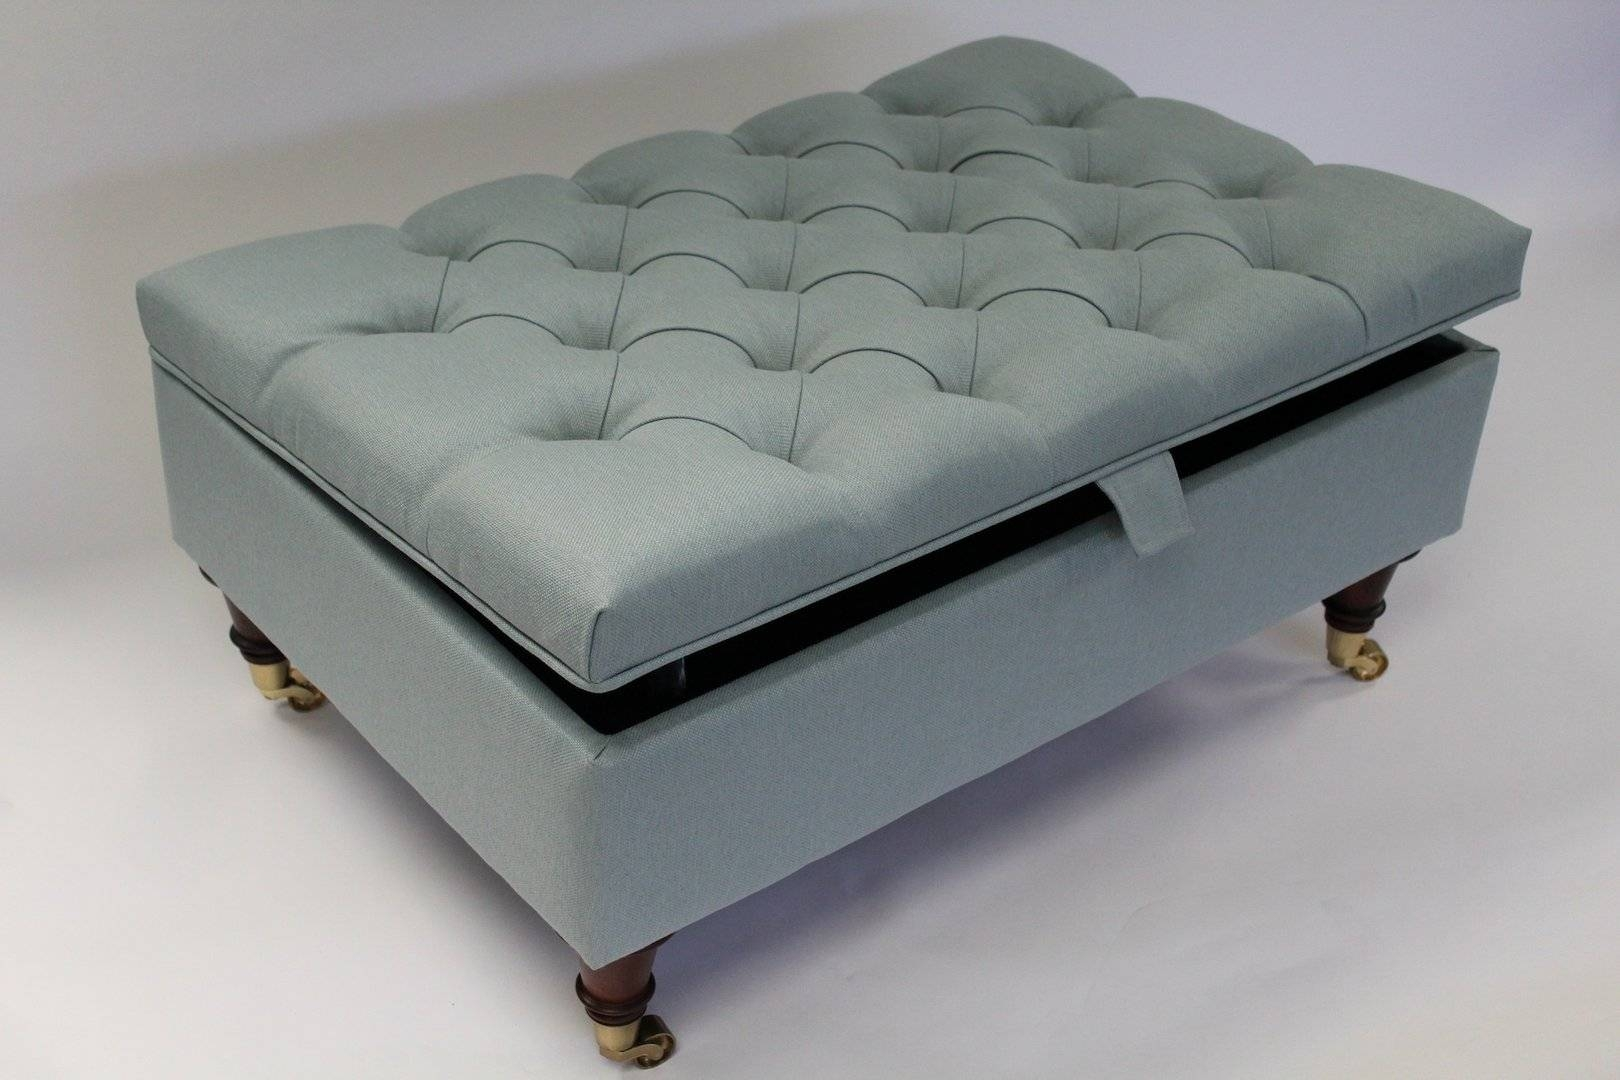 Blue Ottoman Coffee Table | Timconverse inside Blue Coffee Tables (Image 6 of 30)